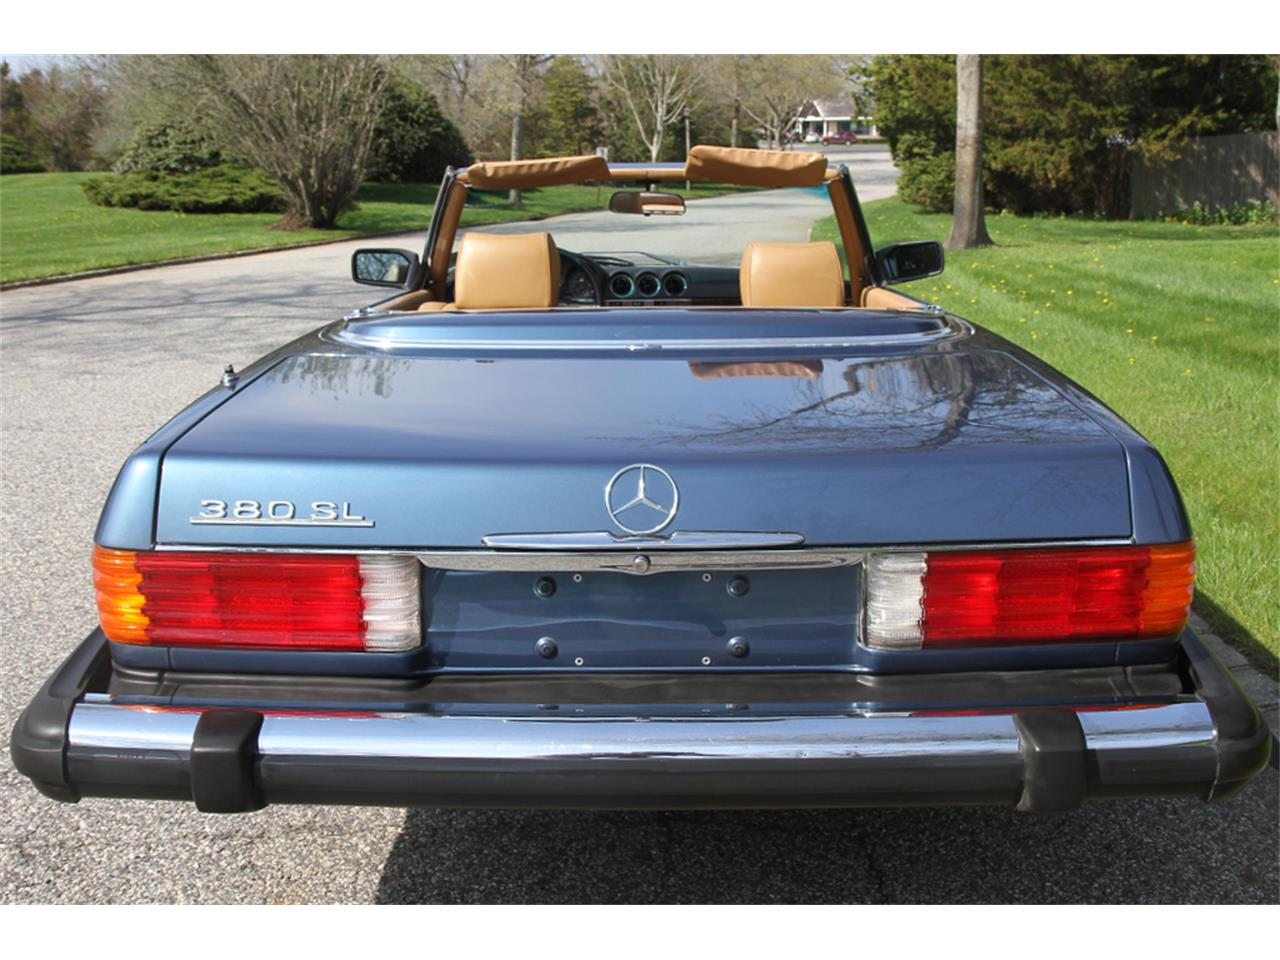 1981 Mercedes Benz 380sl For Sale Cc 1150123 Fuel Filter Large Picture Of 81 Onfv